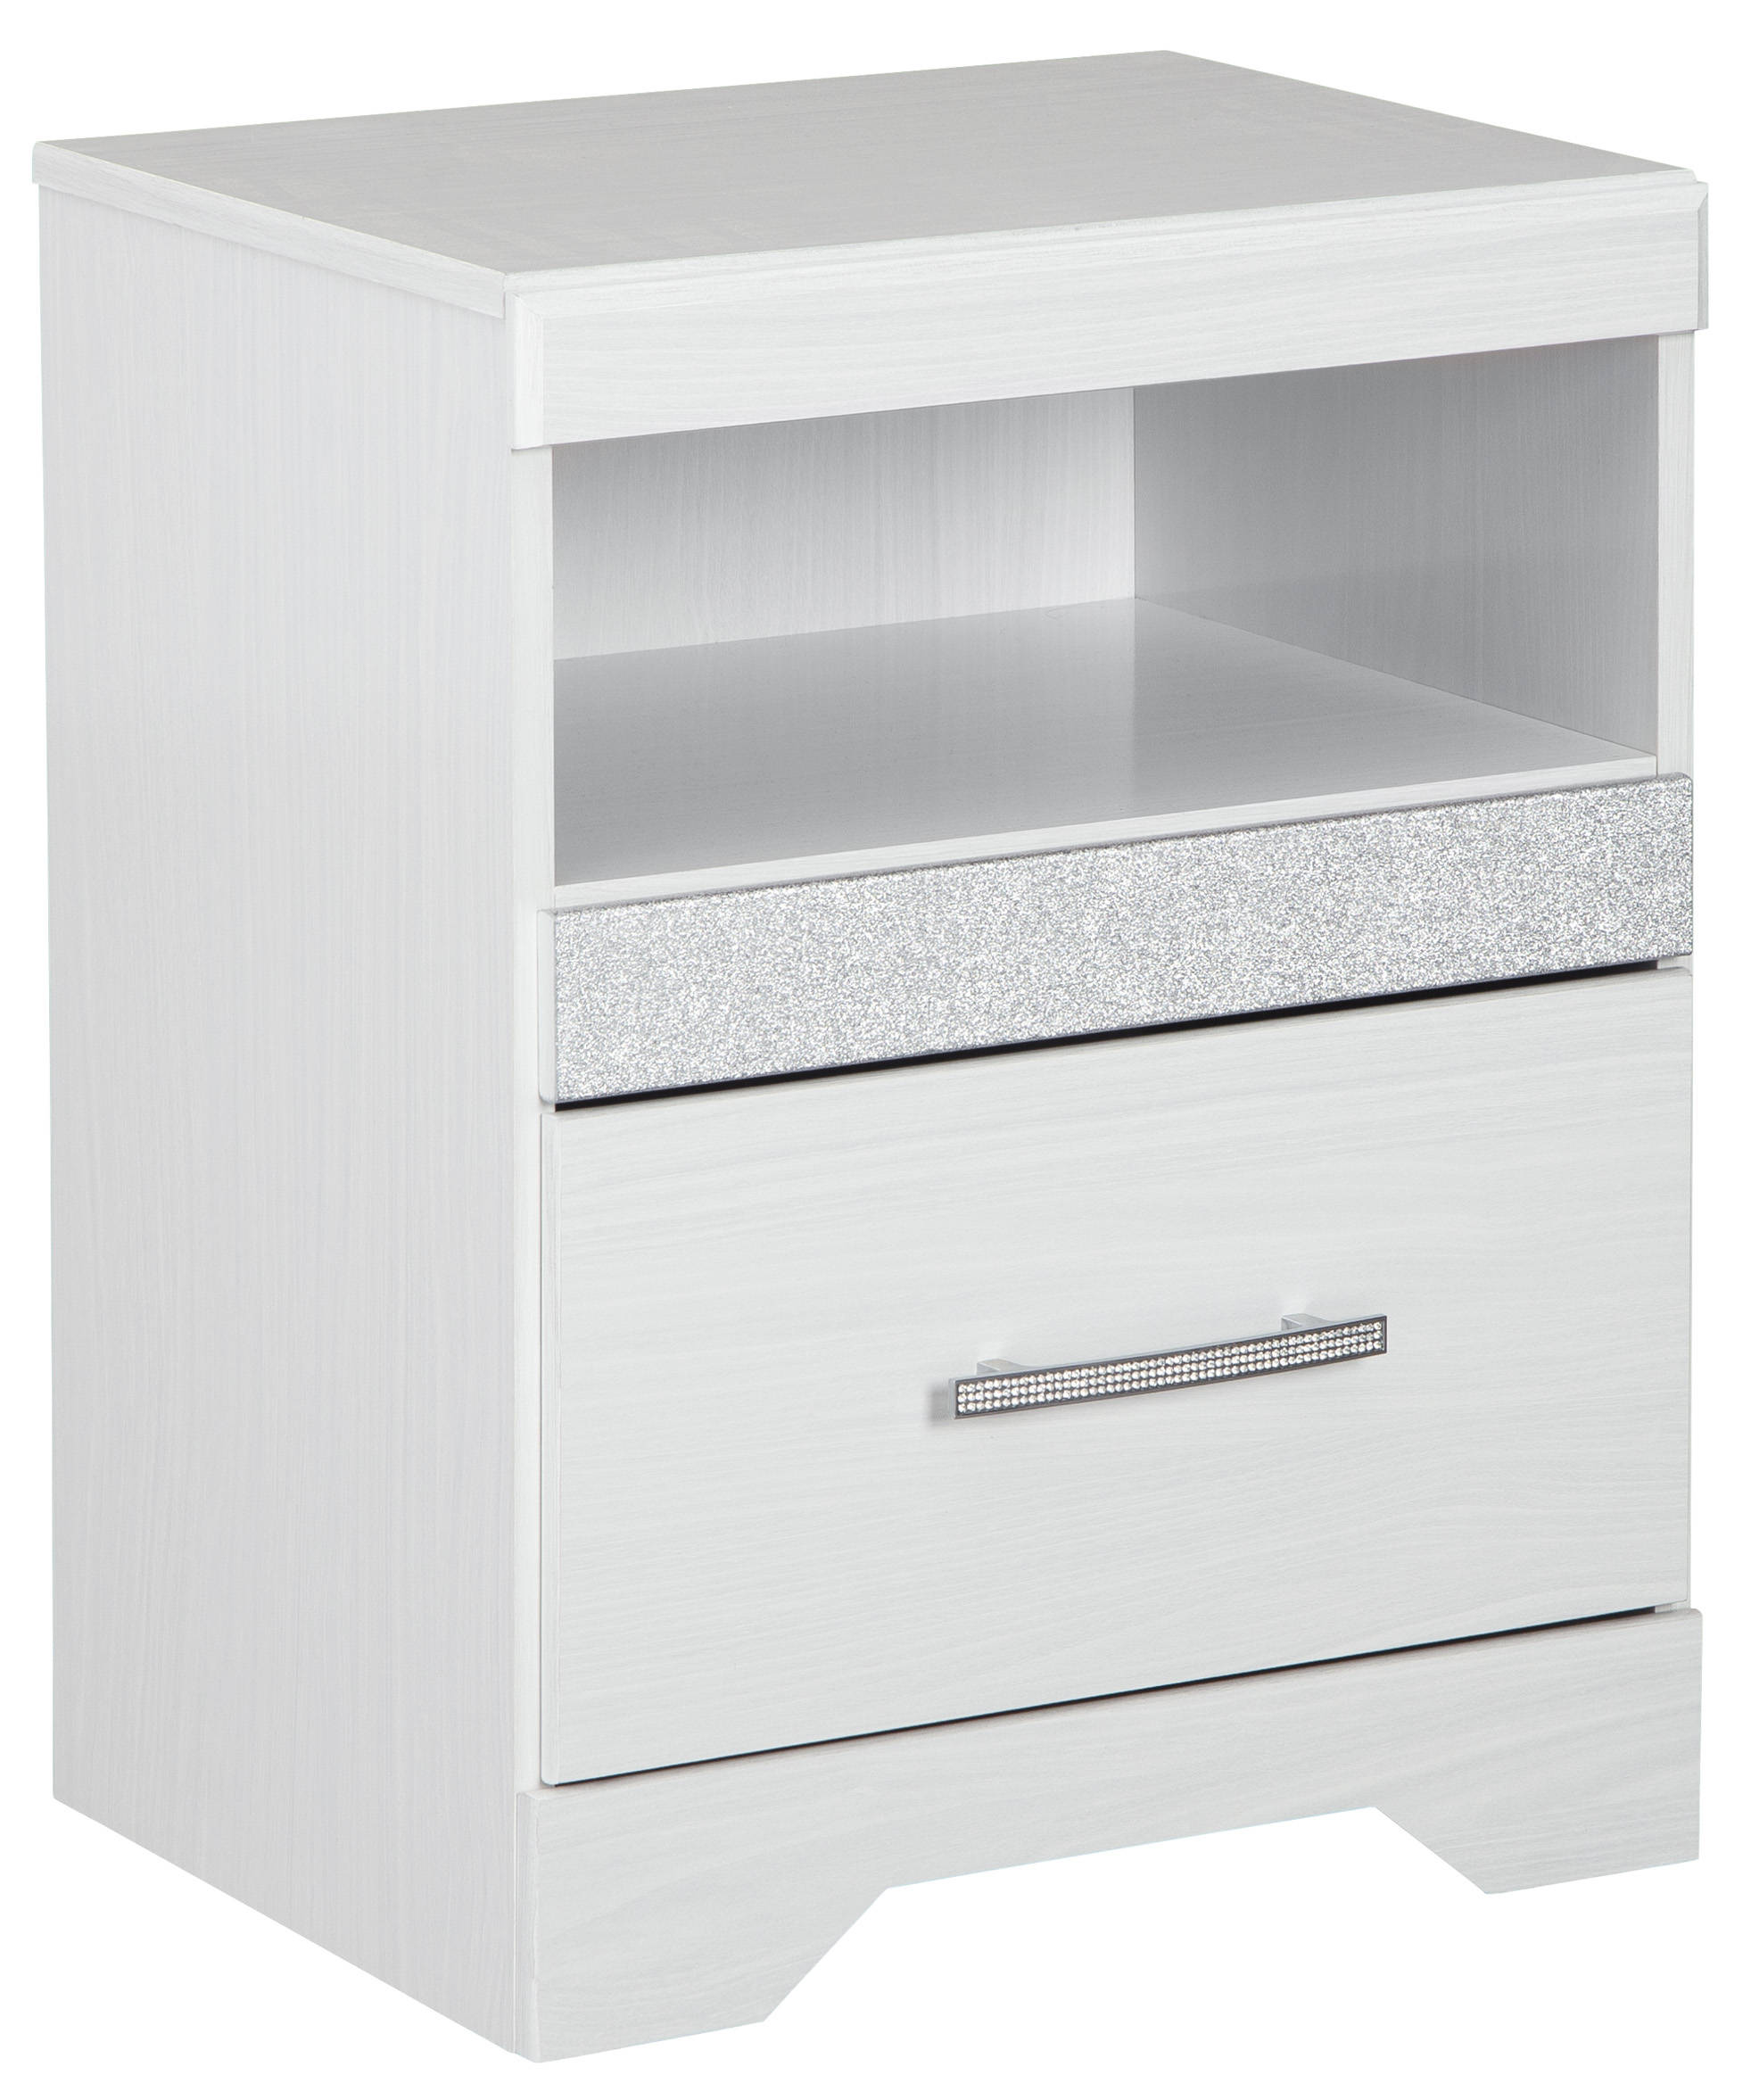 Ashley Furniture Jallory White One Drawer Night Stand